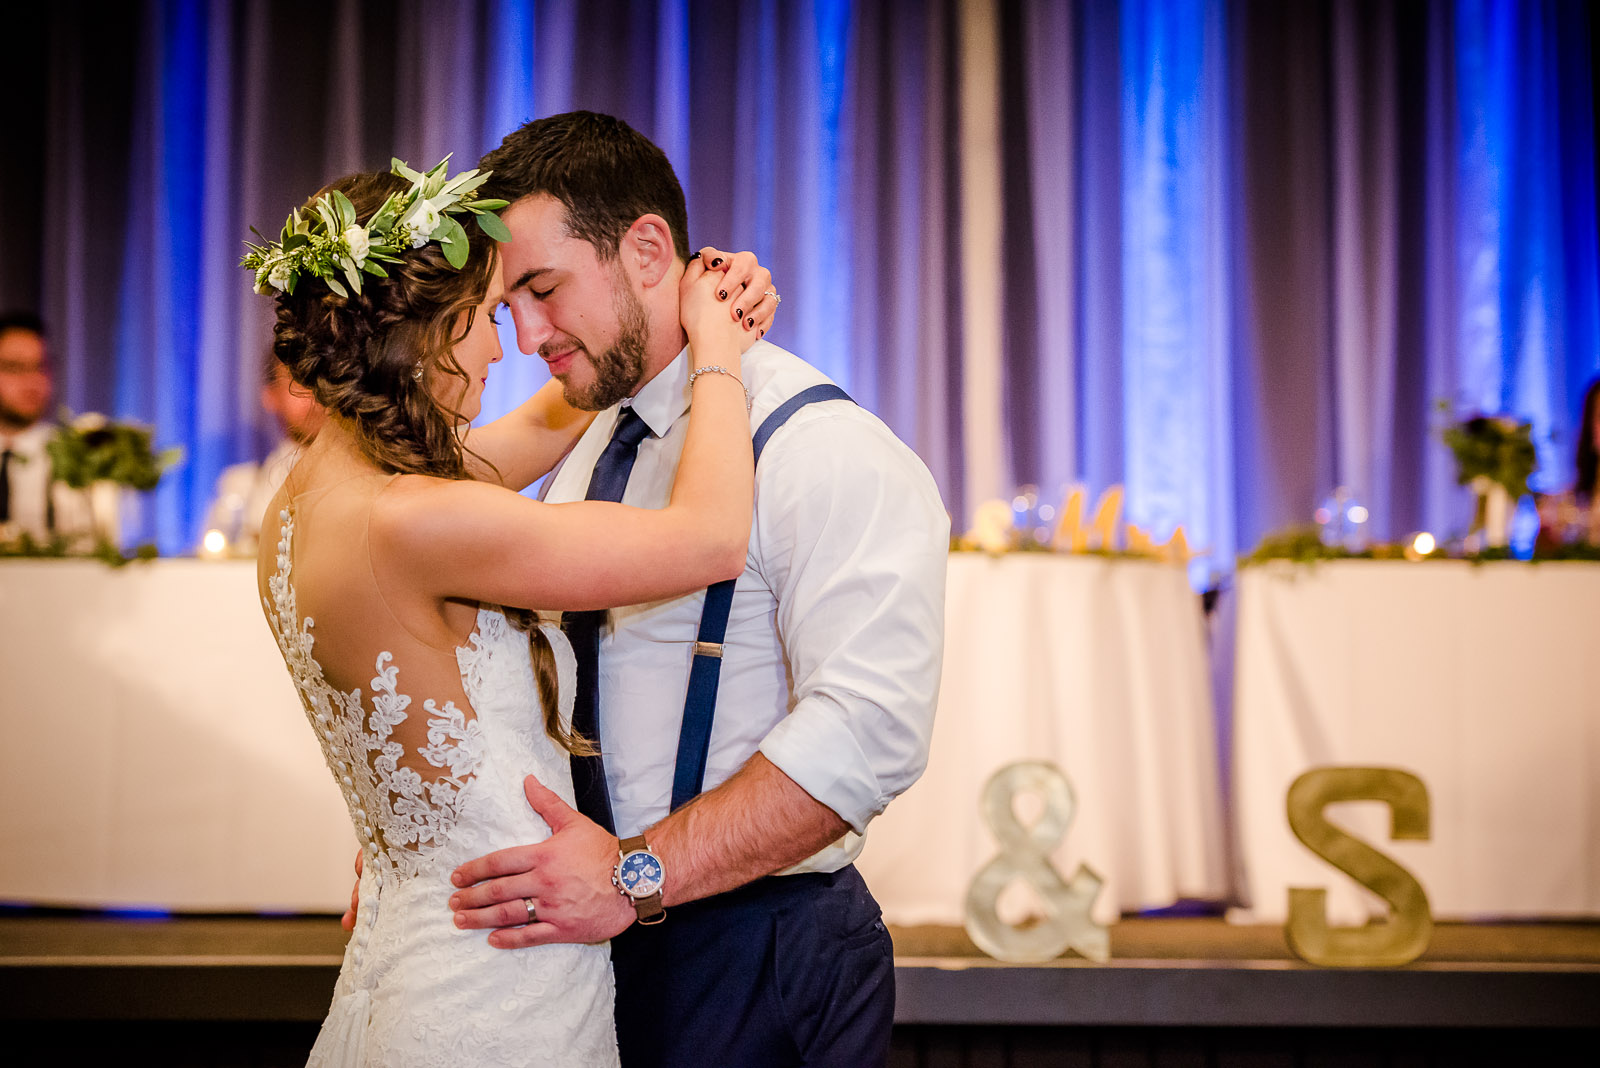 Eric_and_Christy_Photography_Blog_Stephanie_Nick_Wedding-100